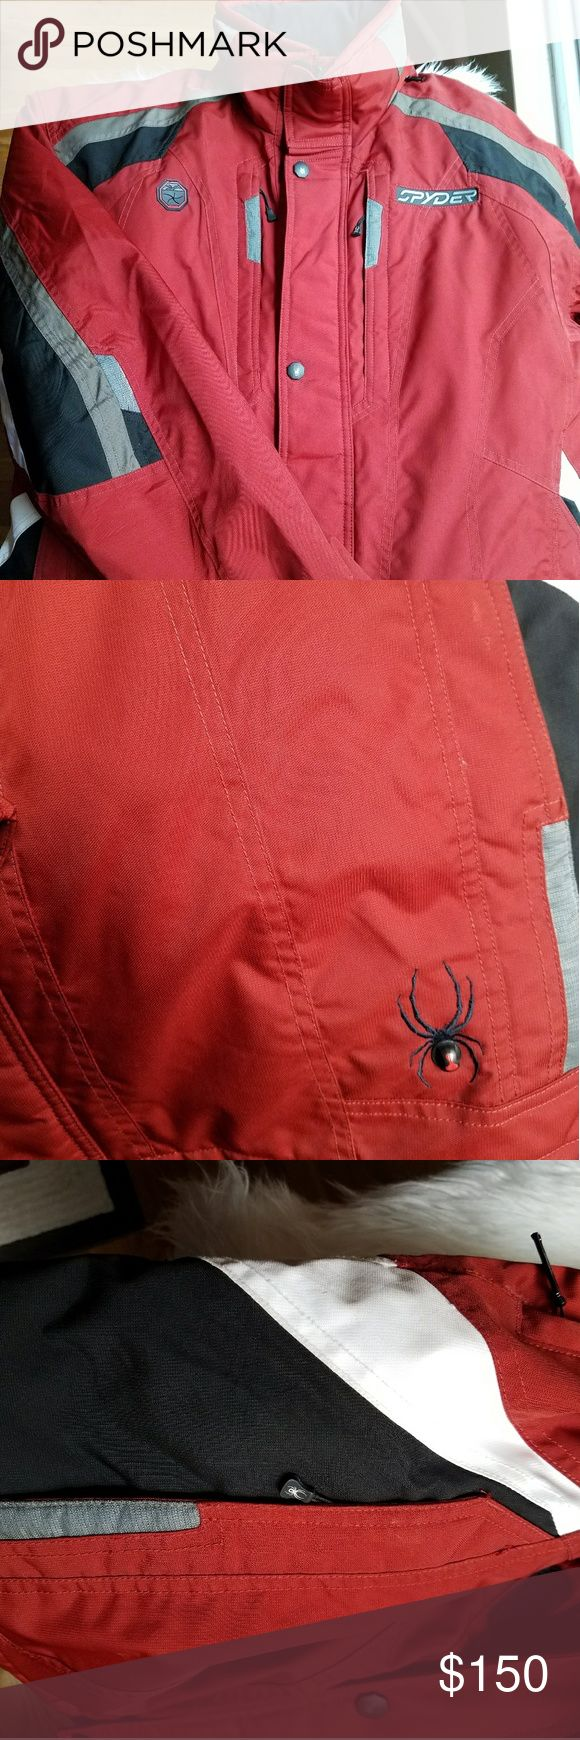 Men's Jacket Greatly used for cold weather.  Brand: Spyder  *very durable  *mint condition  *used for skiing or cold temperatures; very well insulated! The brand says it all for itself! Spyder Jackets & Coats Ski & Snowboard